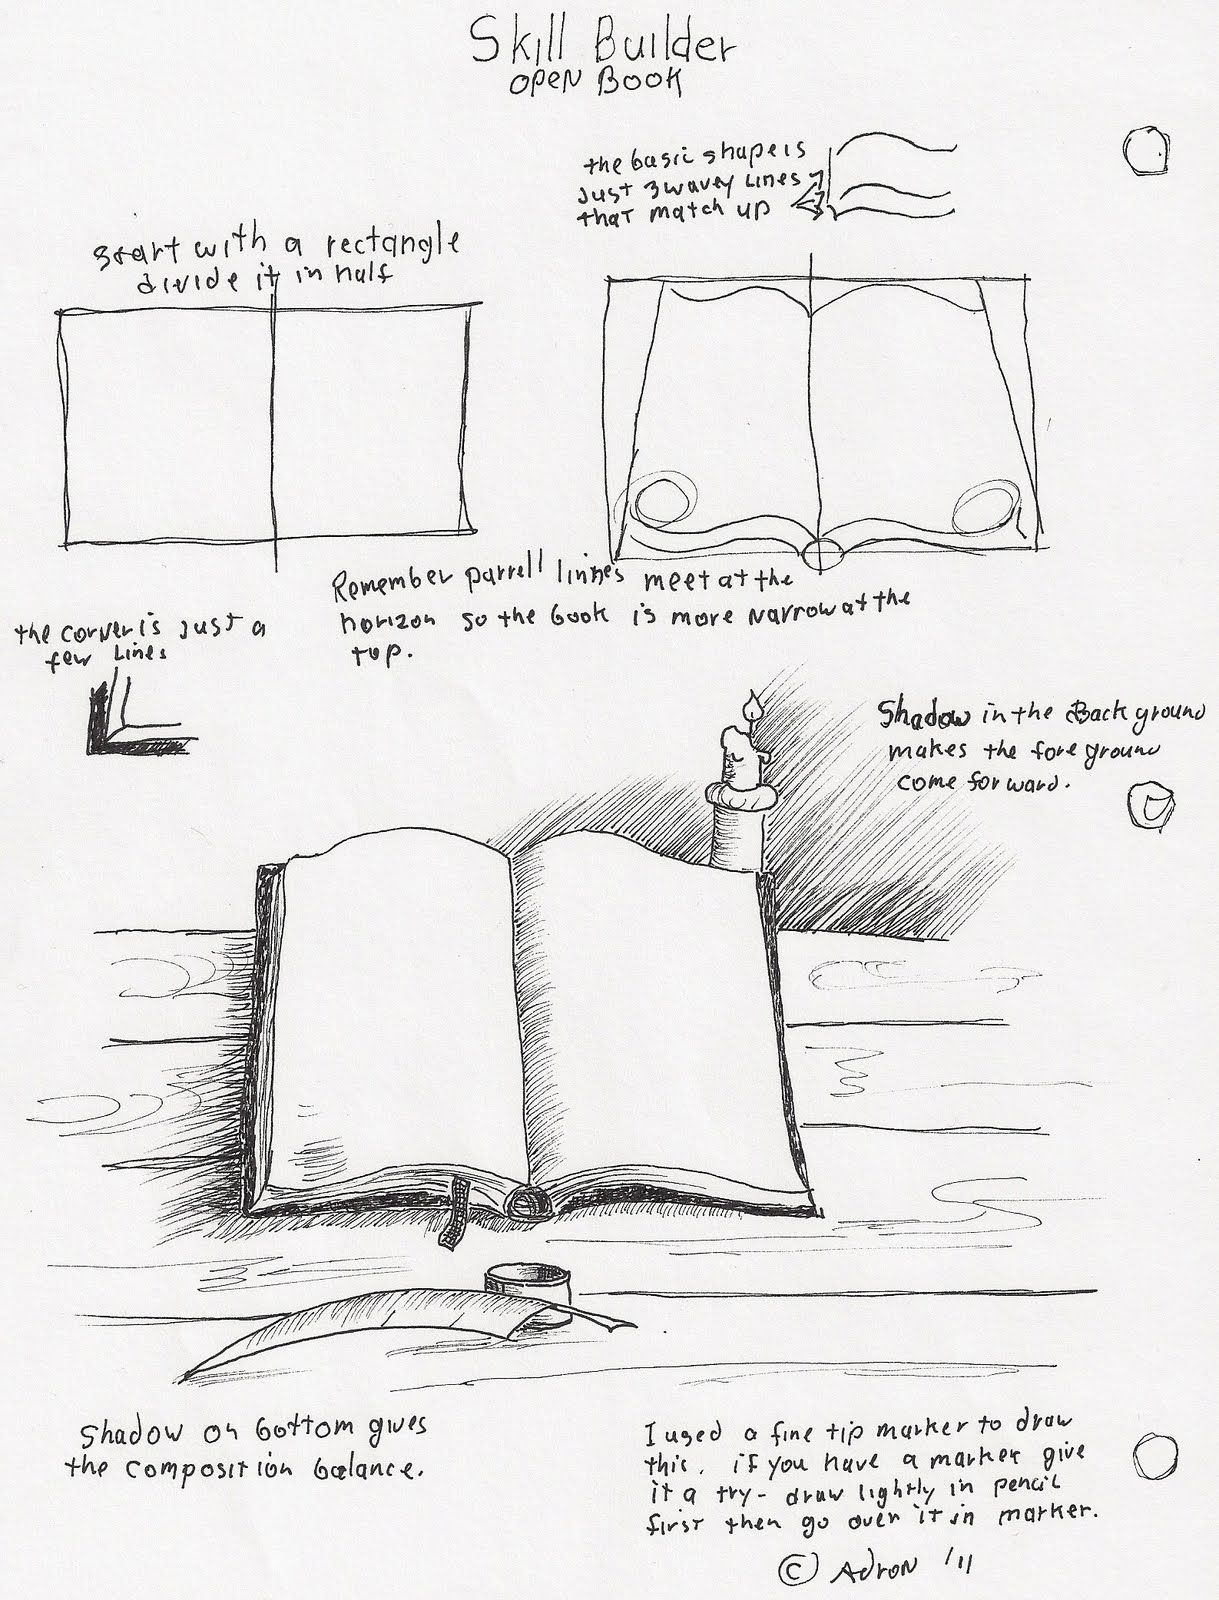 Adron's Art Lesson Plans: How To Draw An Open Book With Pen And Ink For